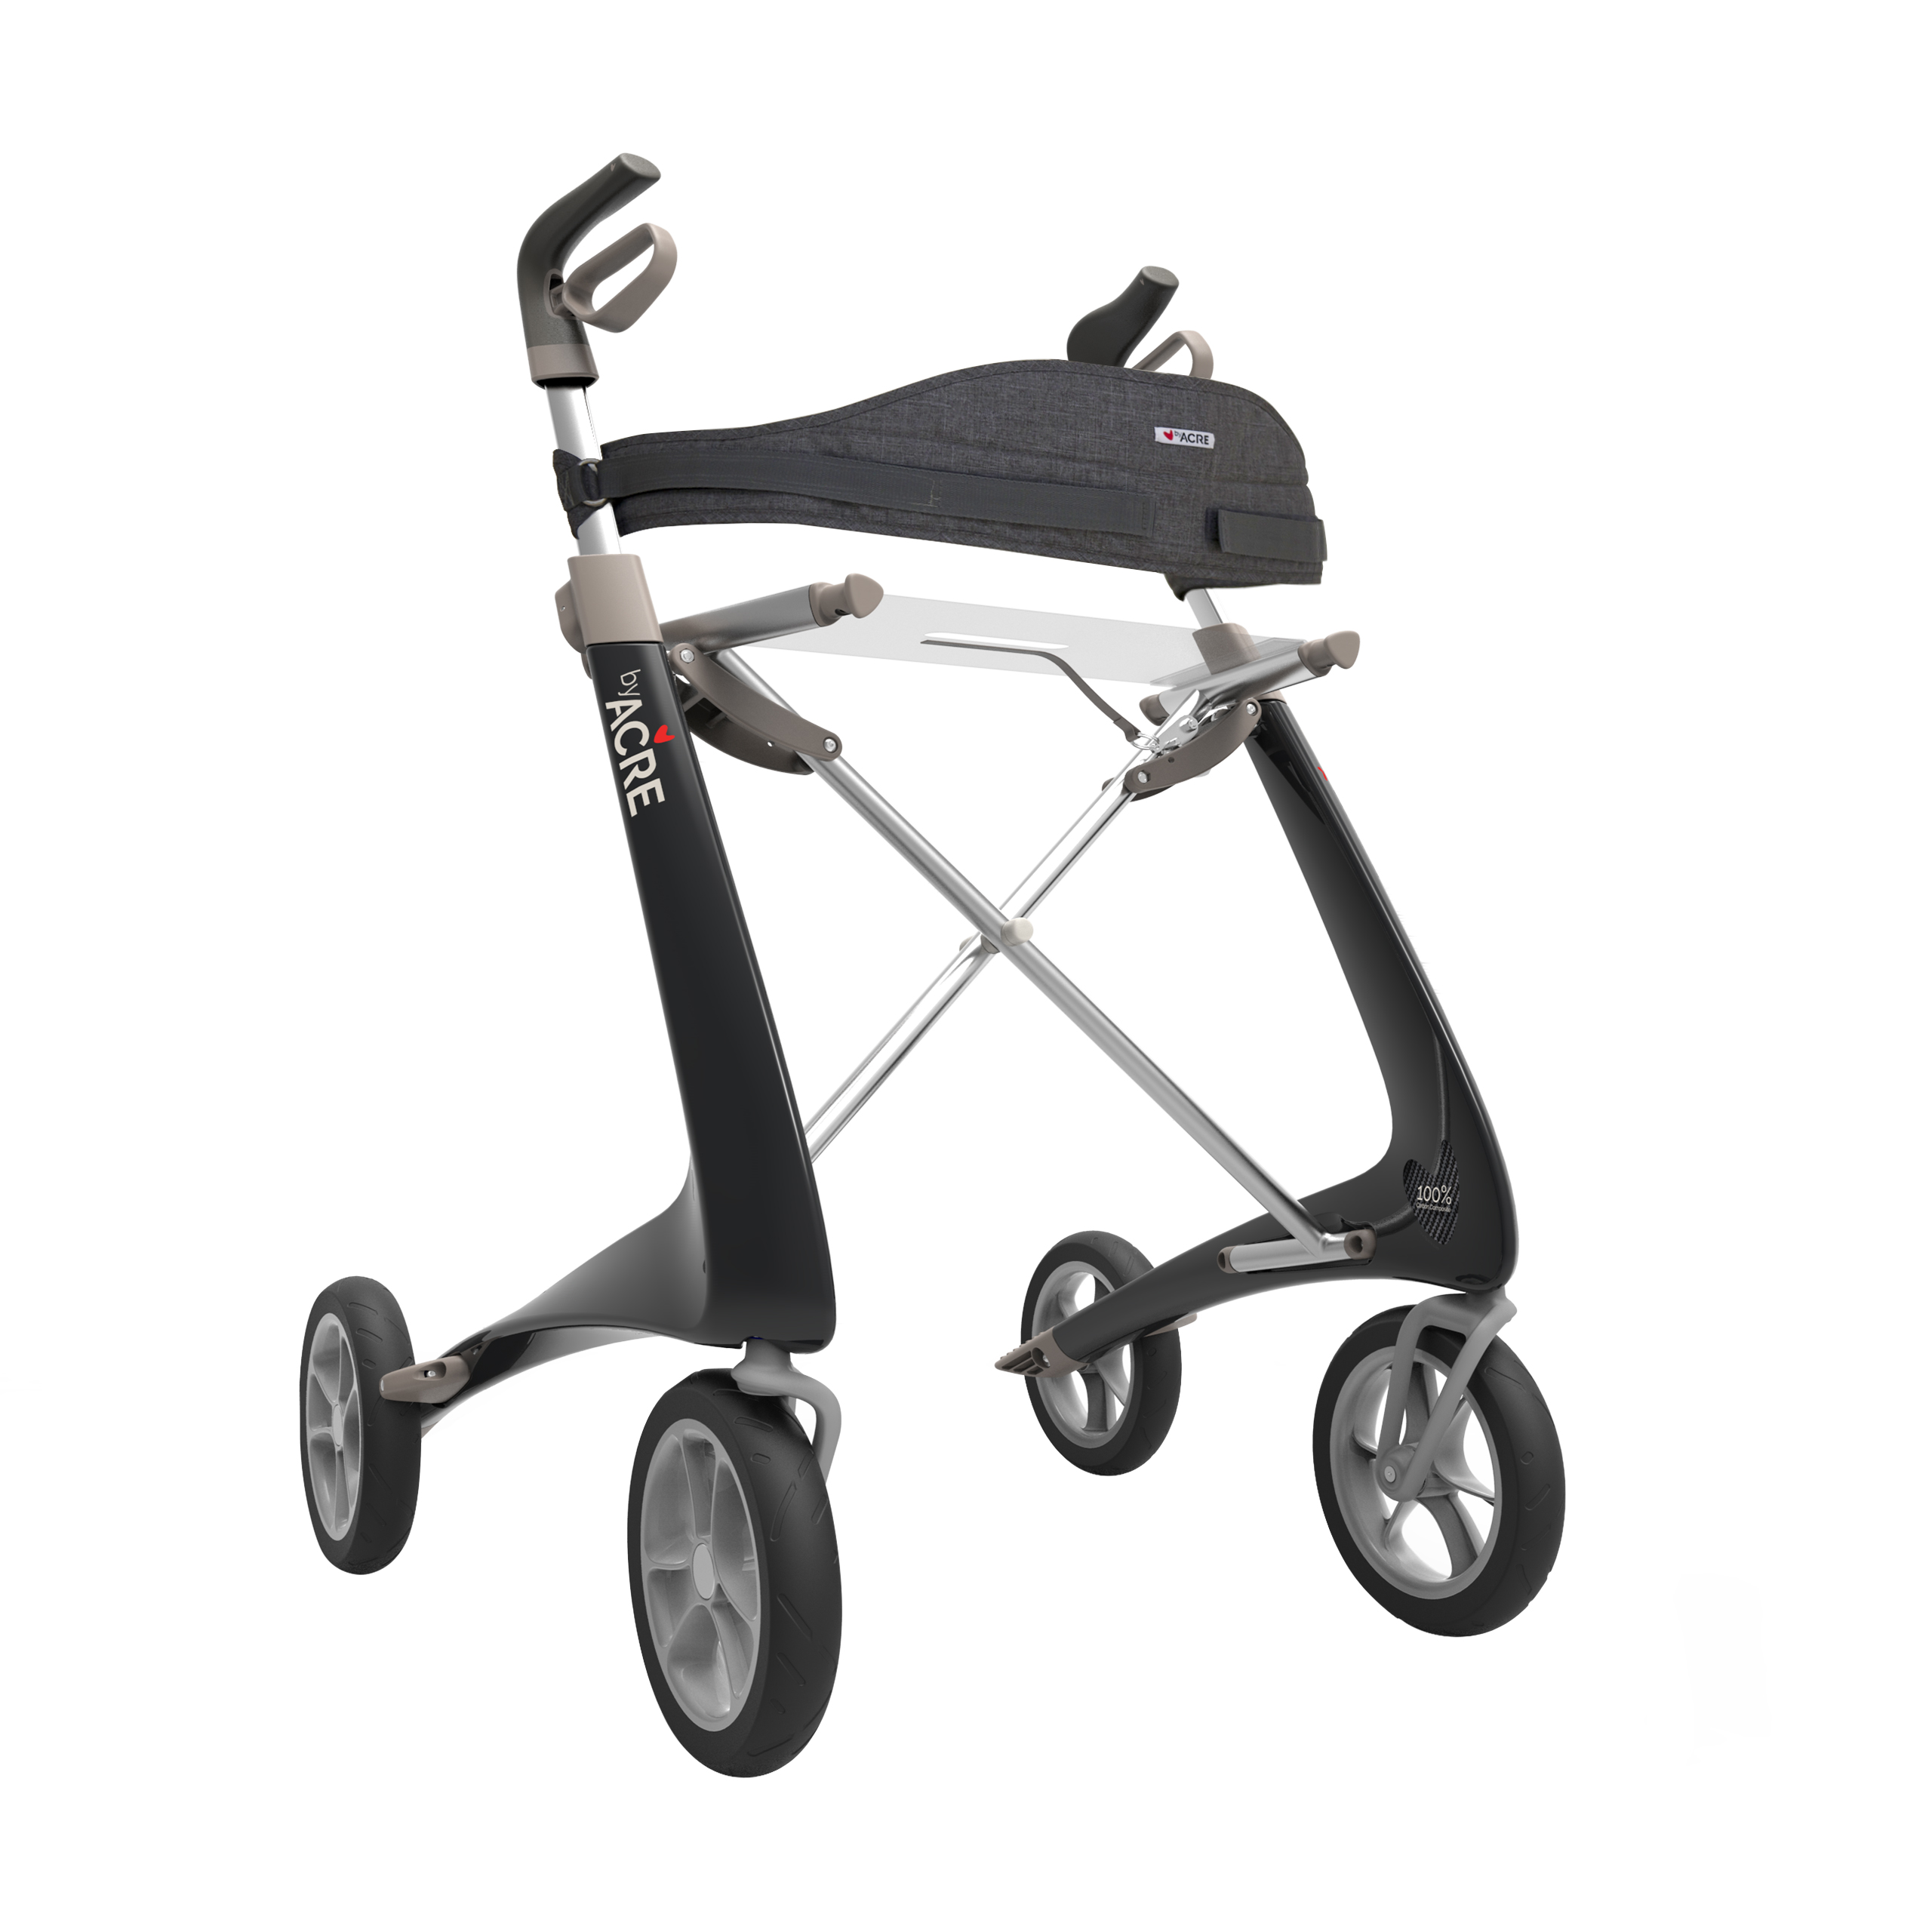 Backrest on the black Carbon Ultralight Rollator byACRE - seen in perspective